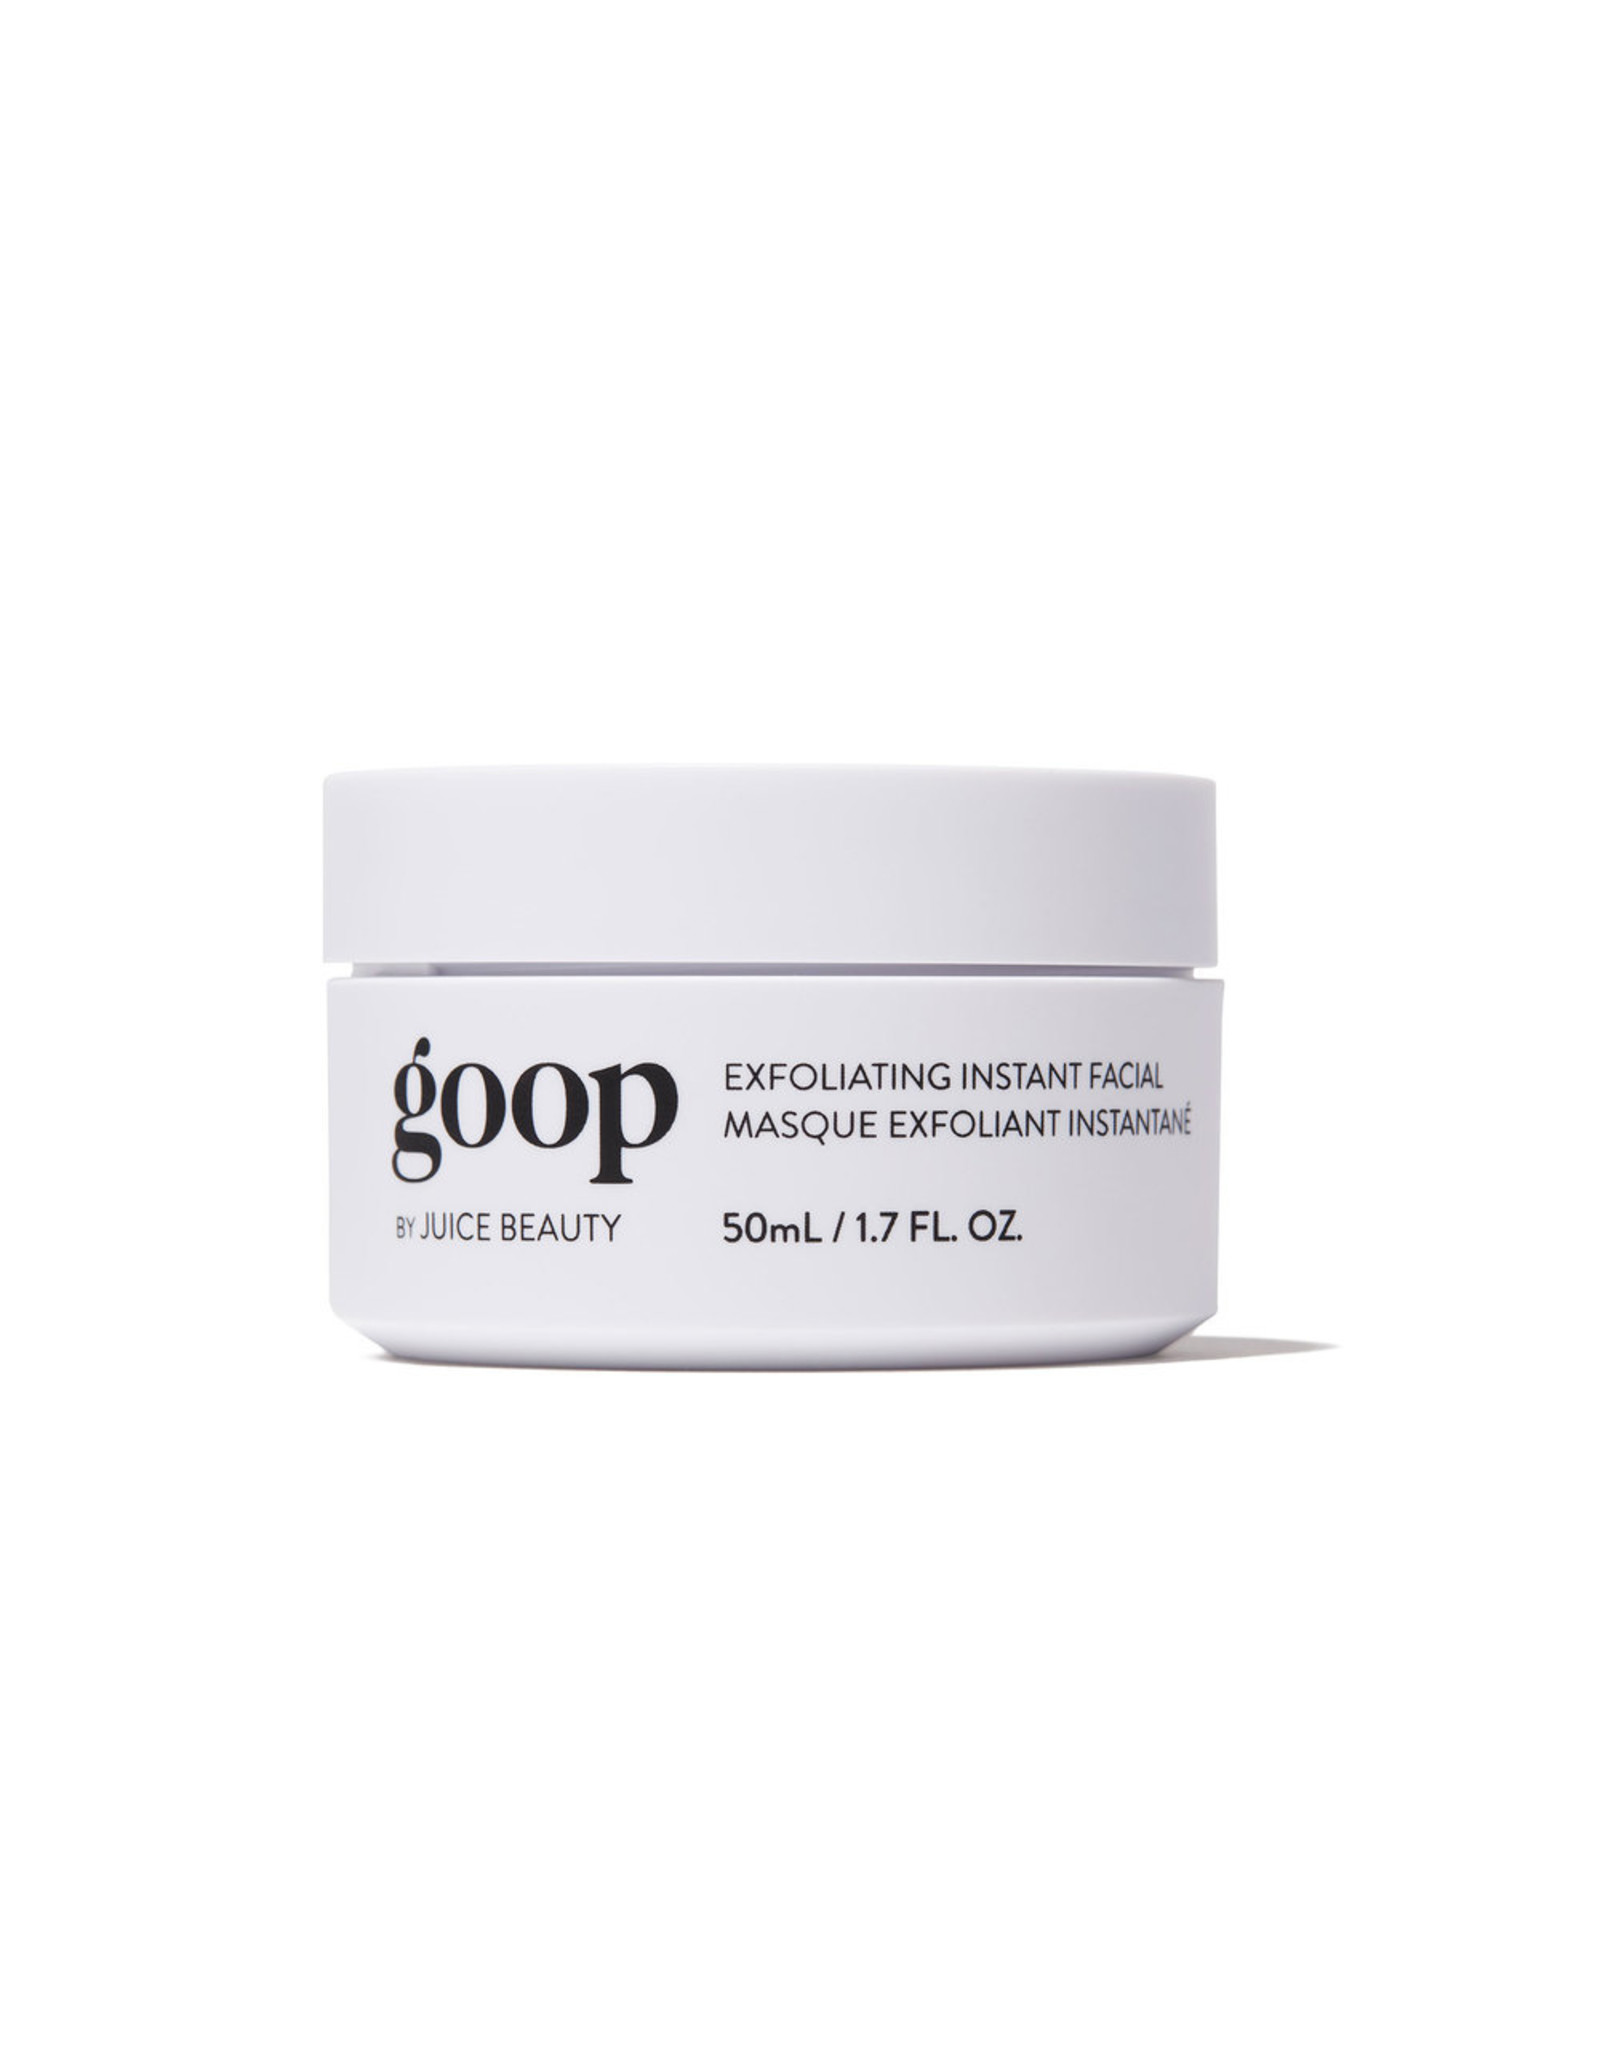 Goop by Juice Beauty Exfoliating Instant Facial 1.7 fl oz (Full Size)